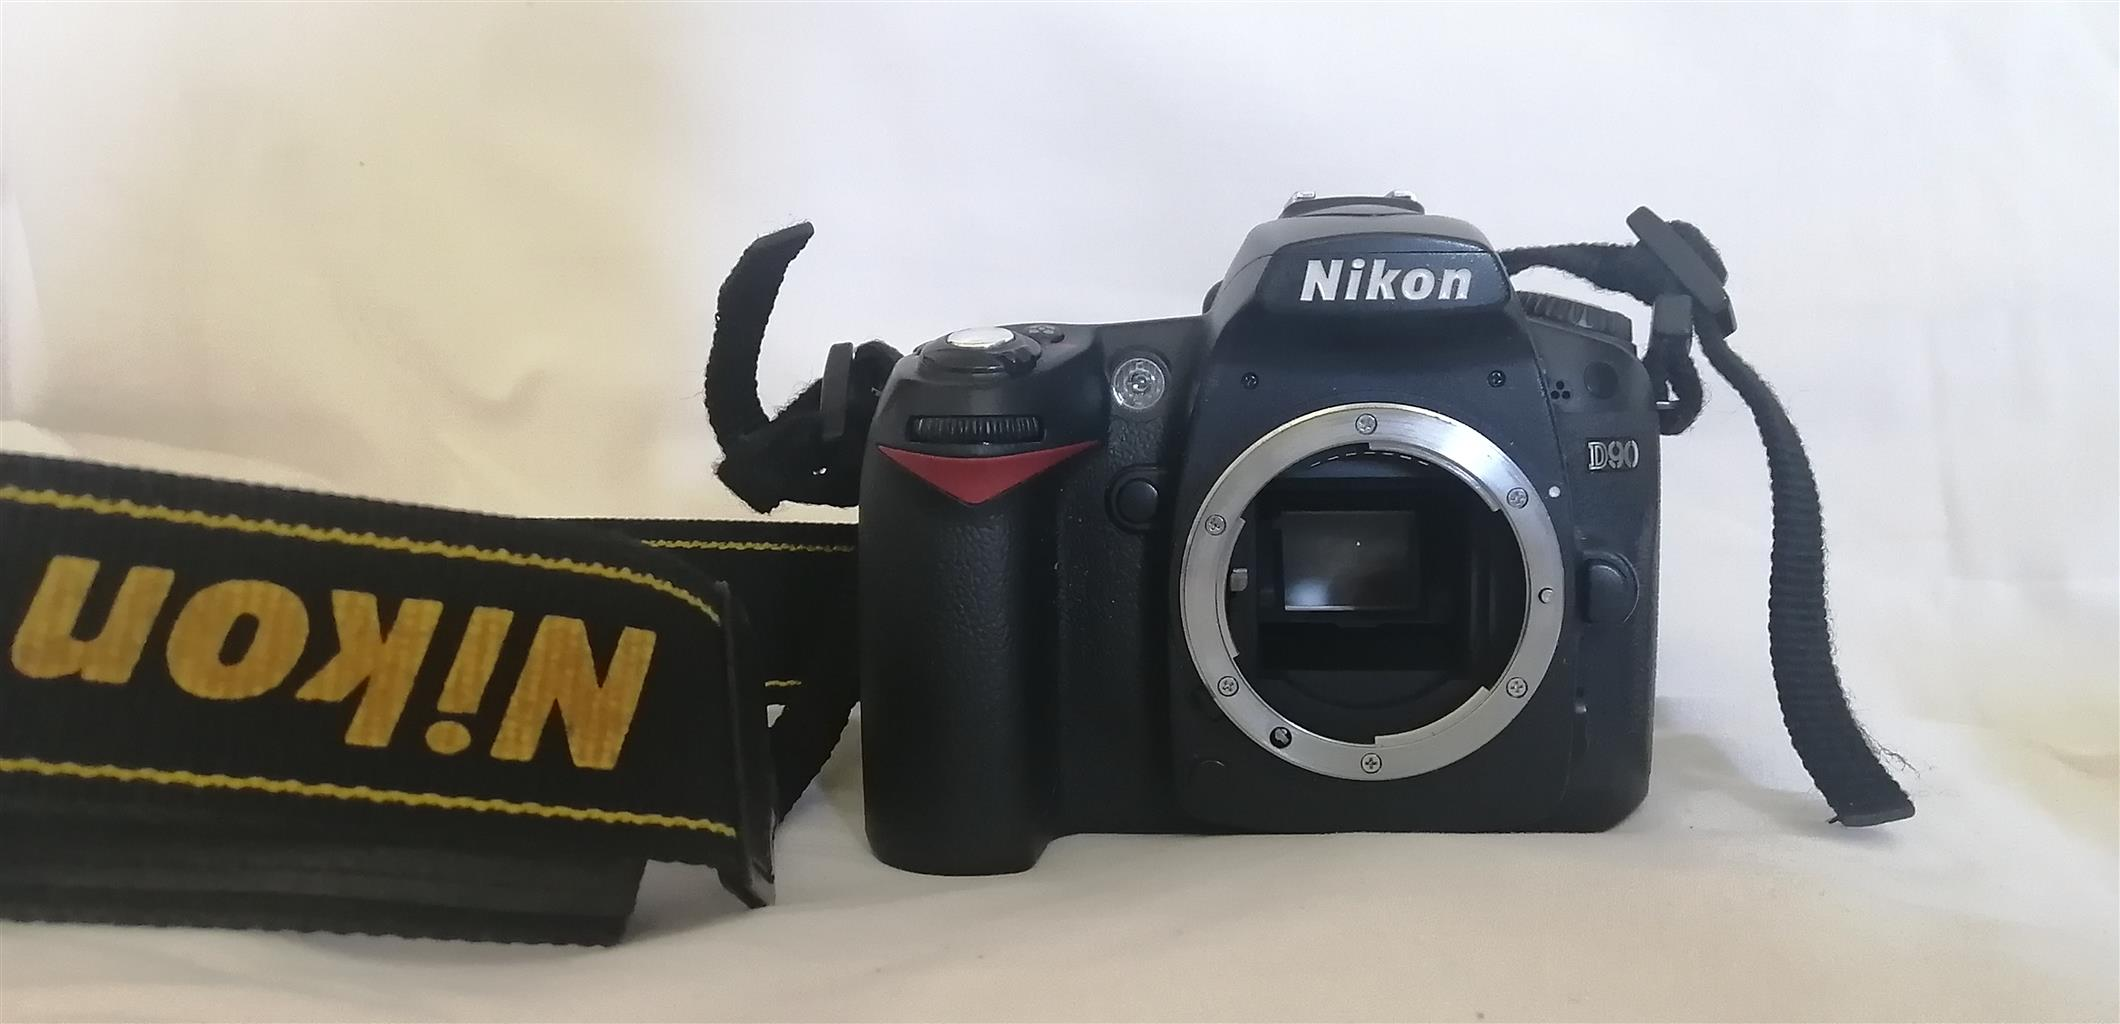 Nikon D90 with 3 standard lenses and accessories